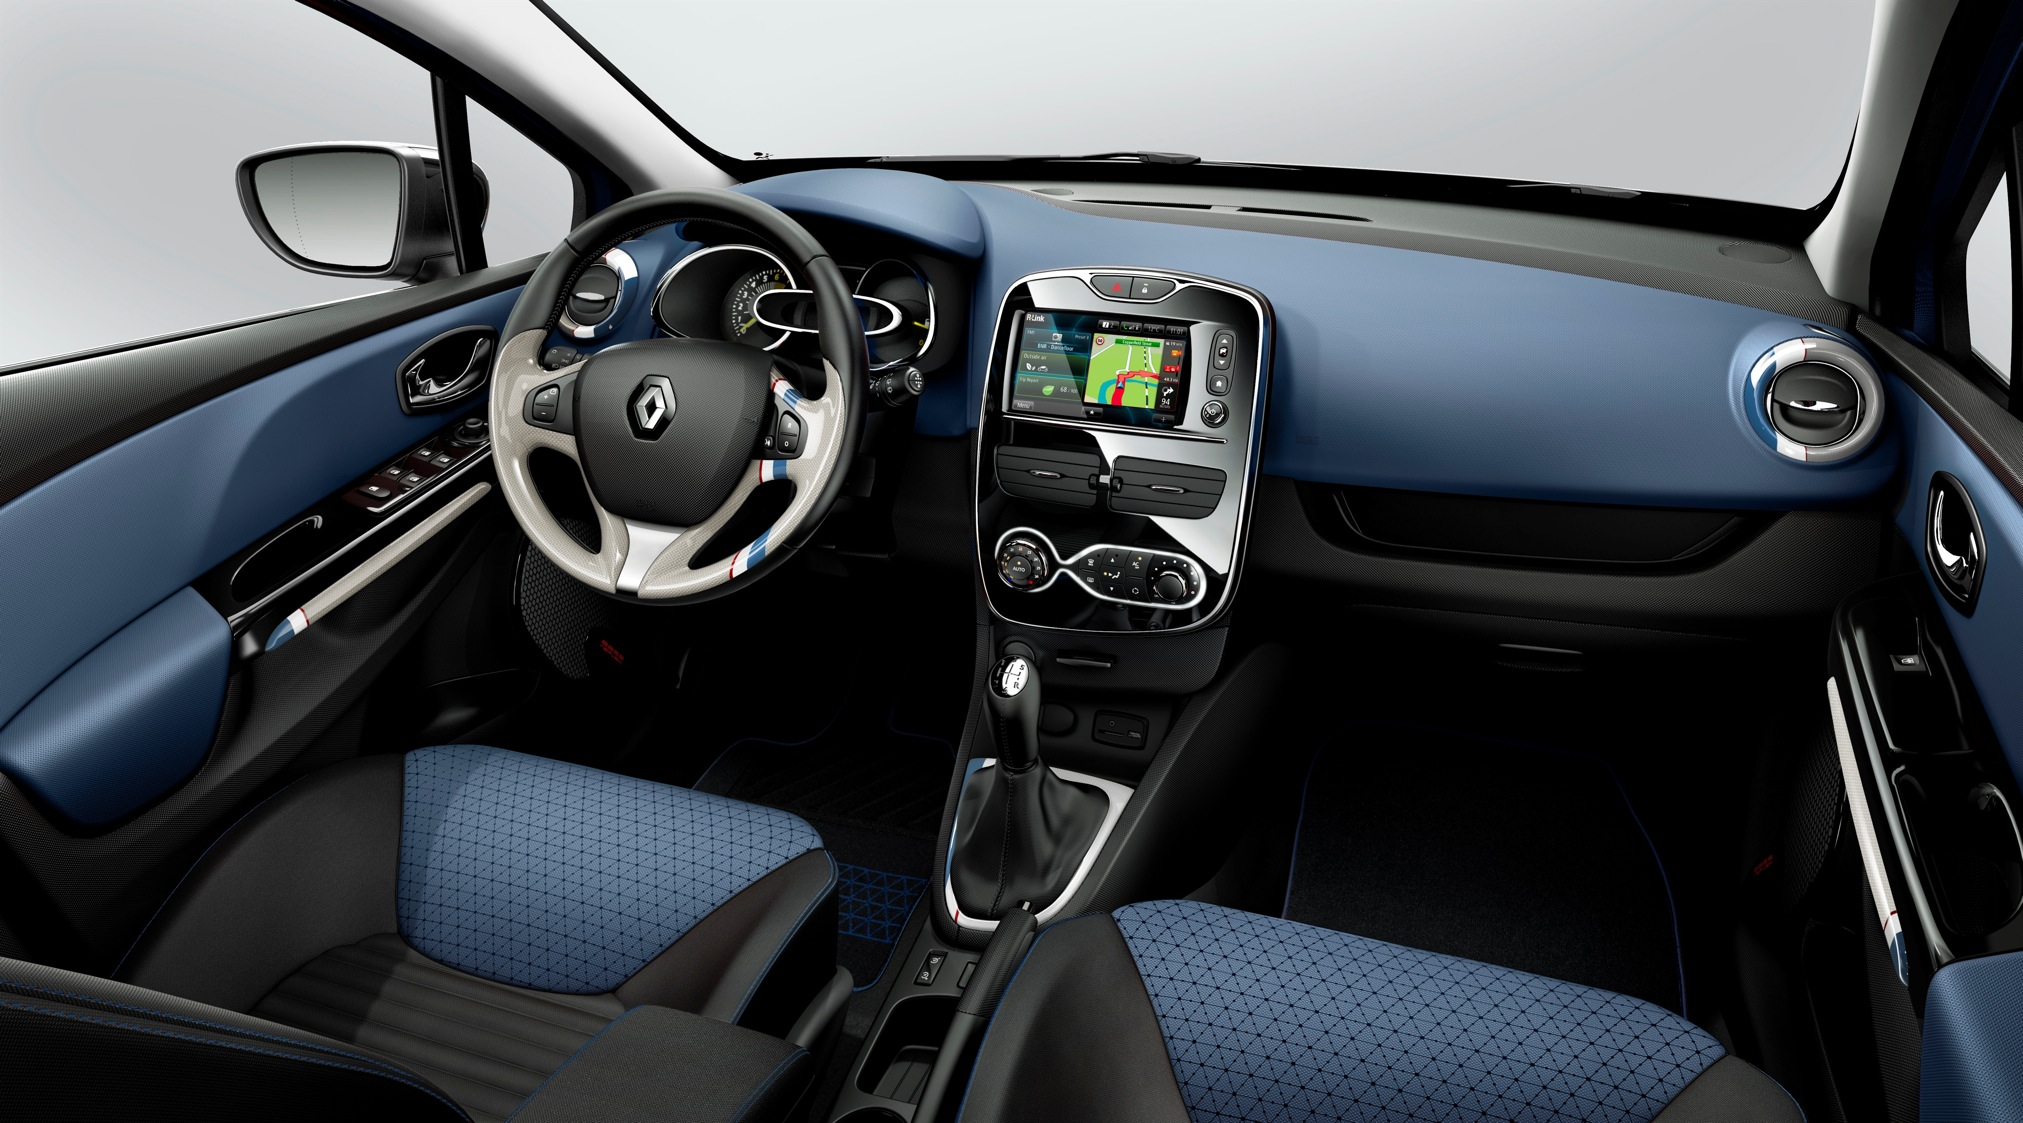 renault clio 5 doors specs 2012 2013 2014 2015 2016 autoevolution. Black Bedroom Furniture Sets. Home Design Ideas